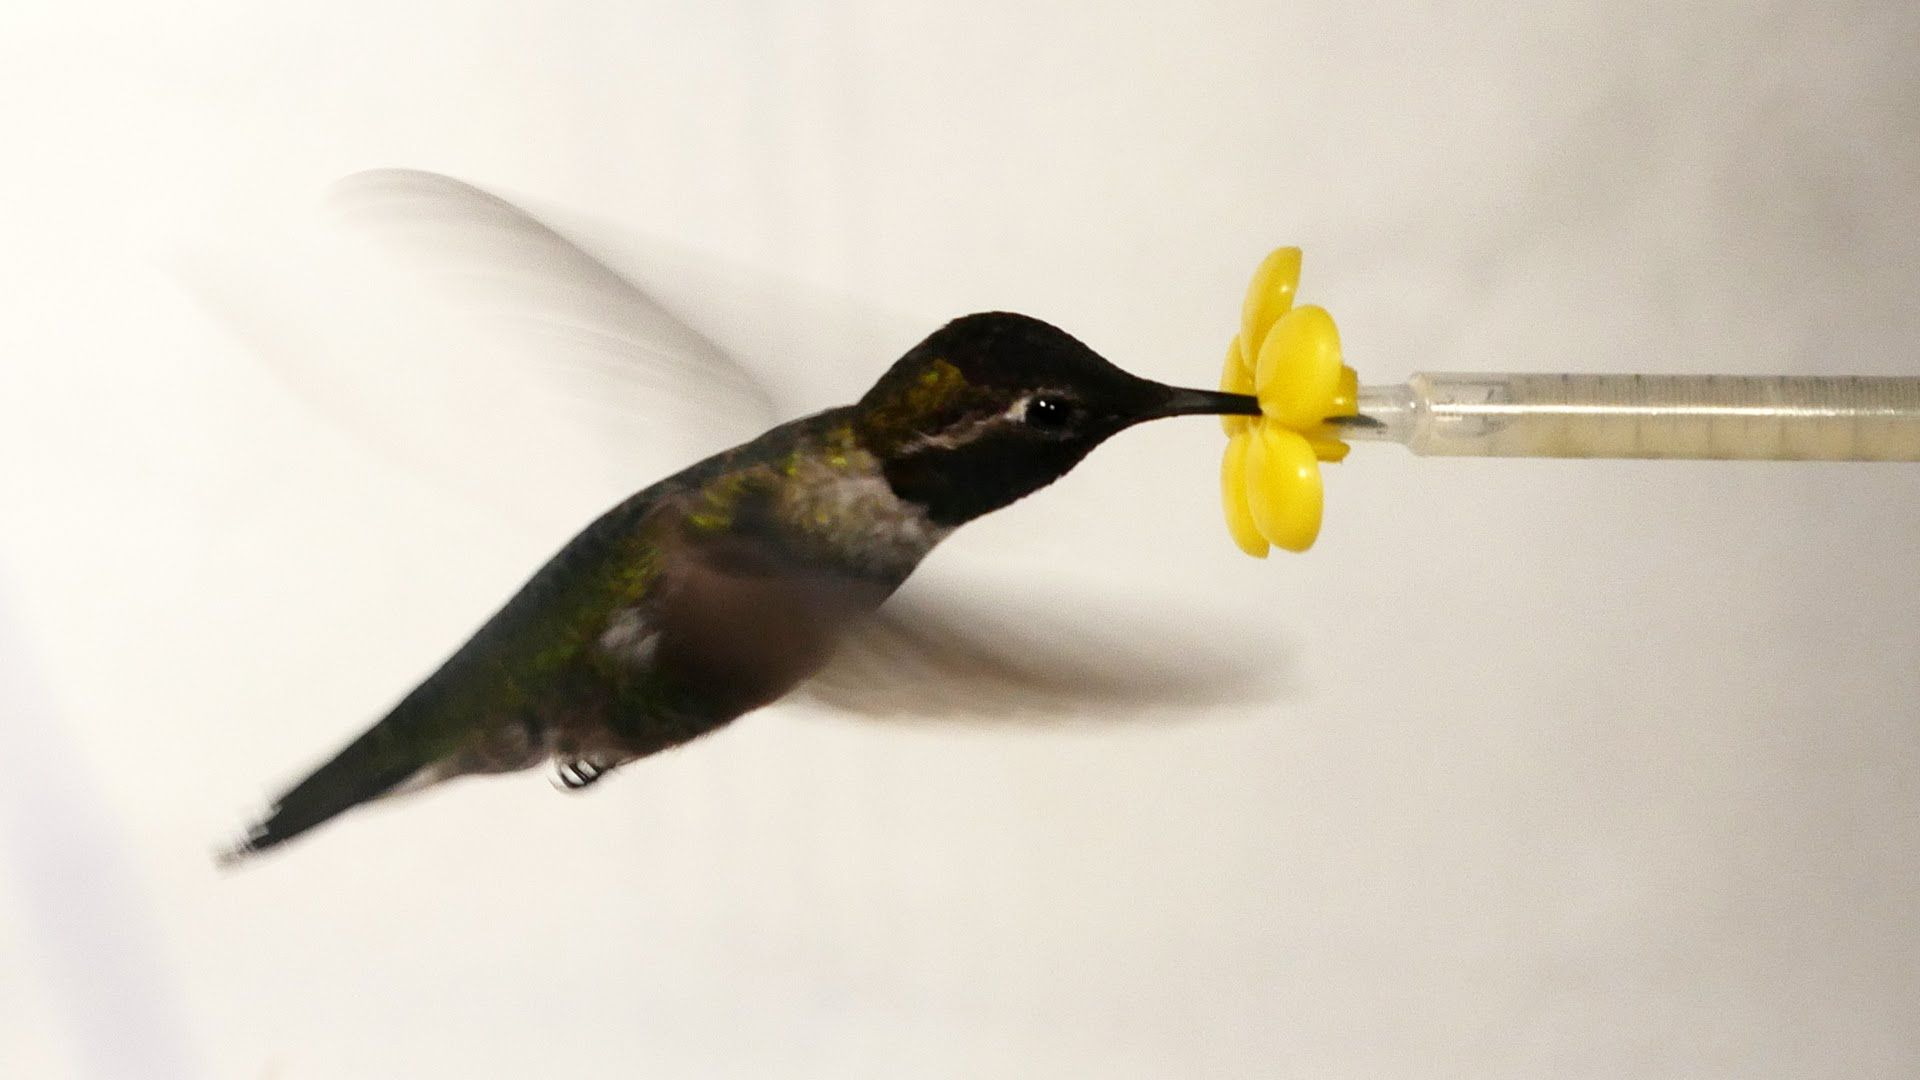 Hummingbirds Fly and Feed Inside a Wind Tunnel While Being